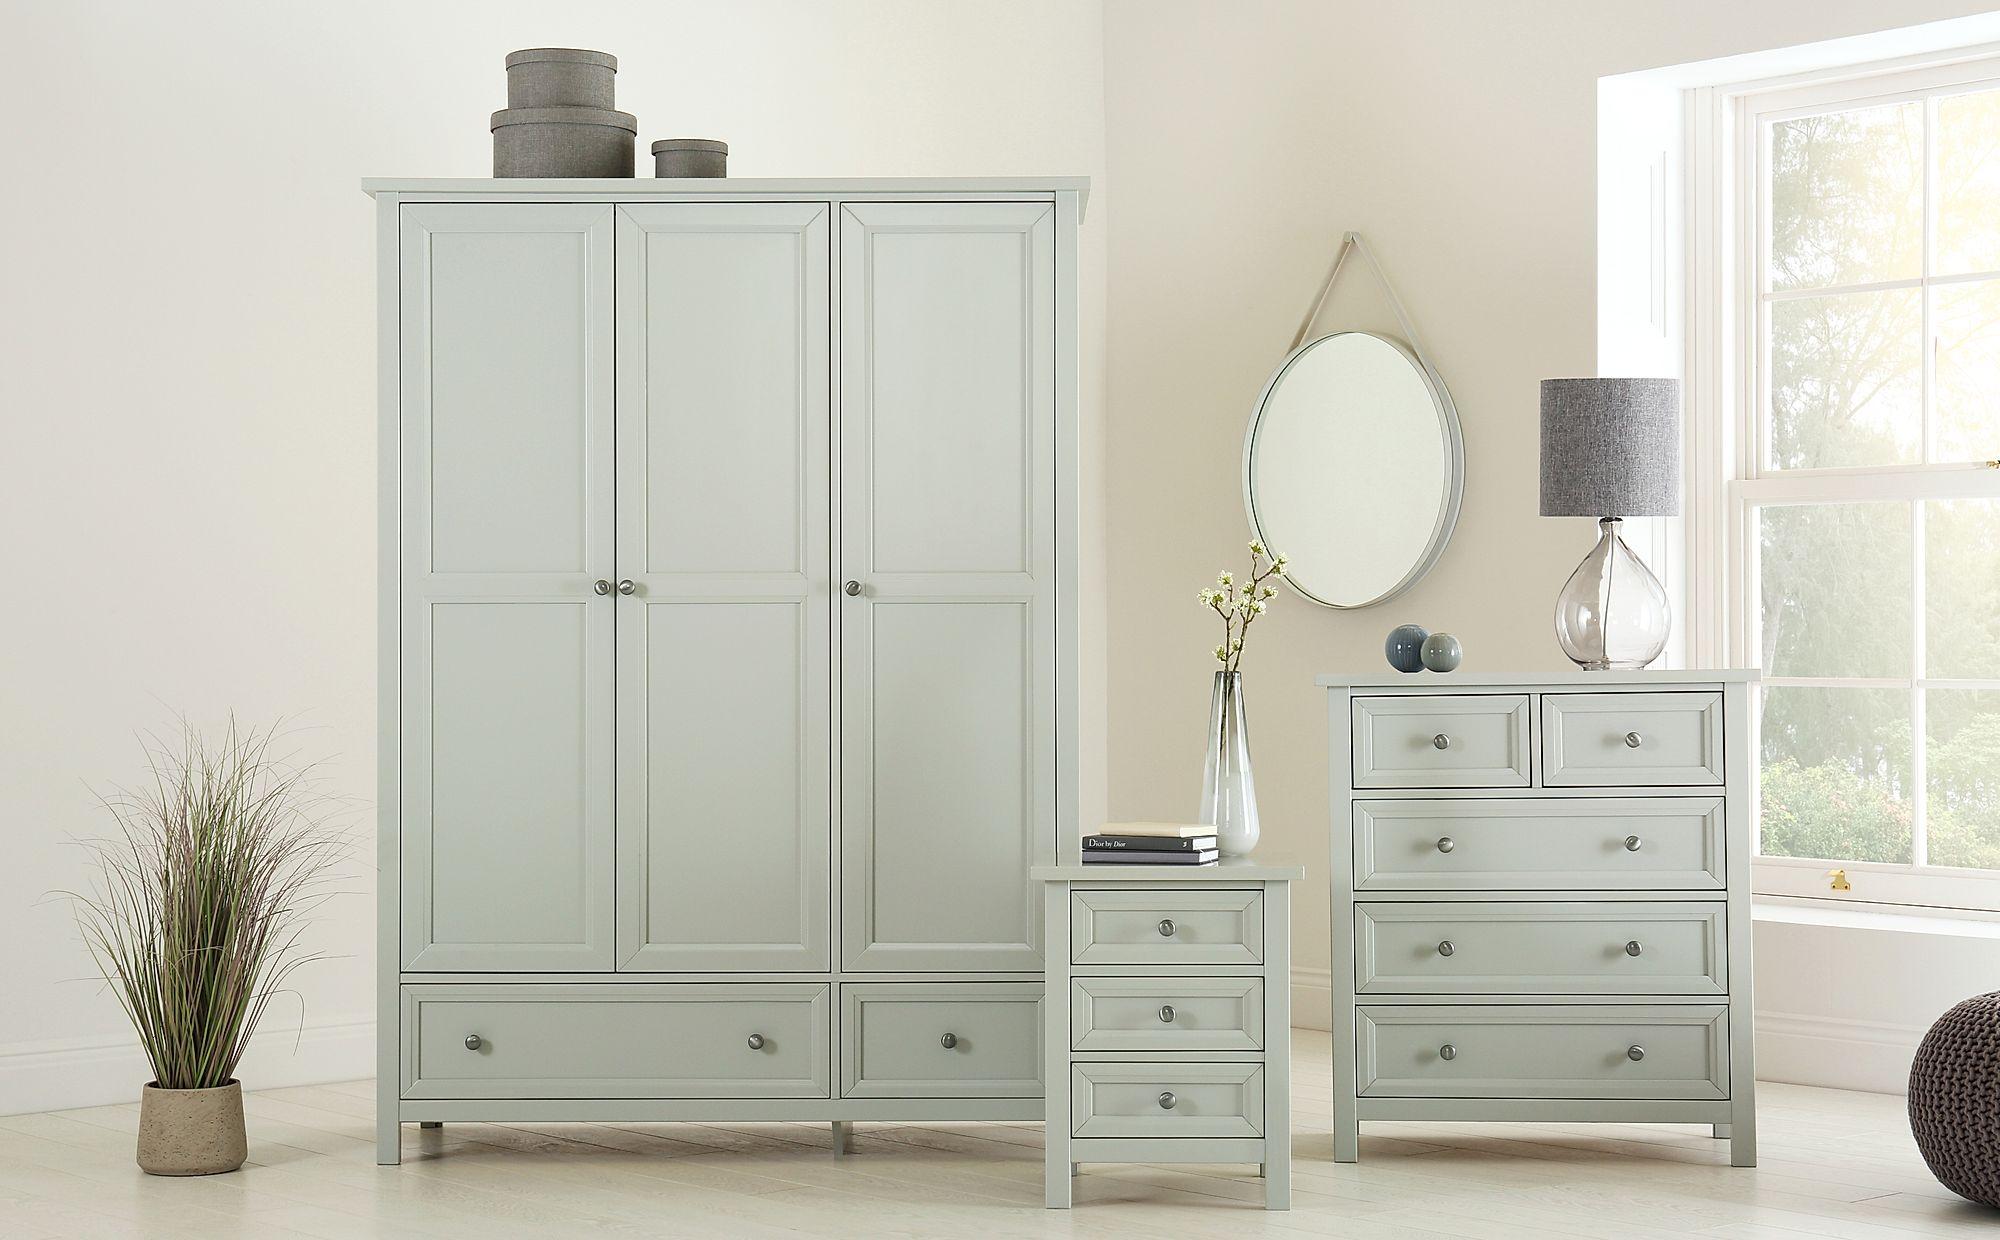 Dorset Dove Grey 3 Piece 3 Door Wardrobe Bedroom Furniture Set Only